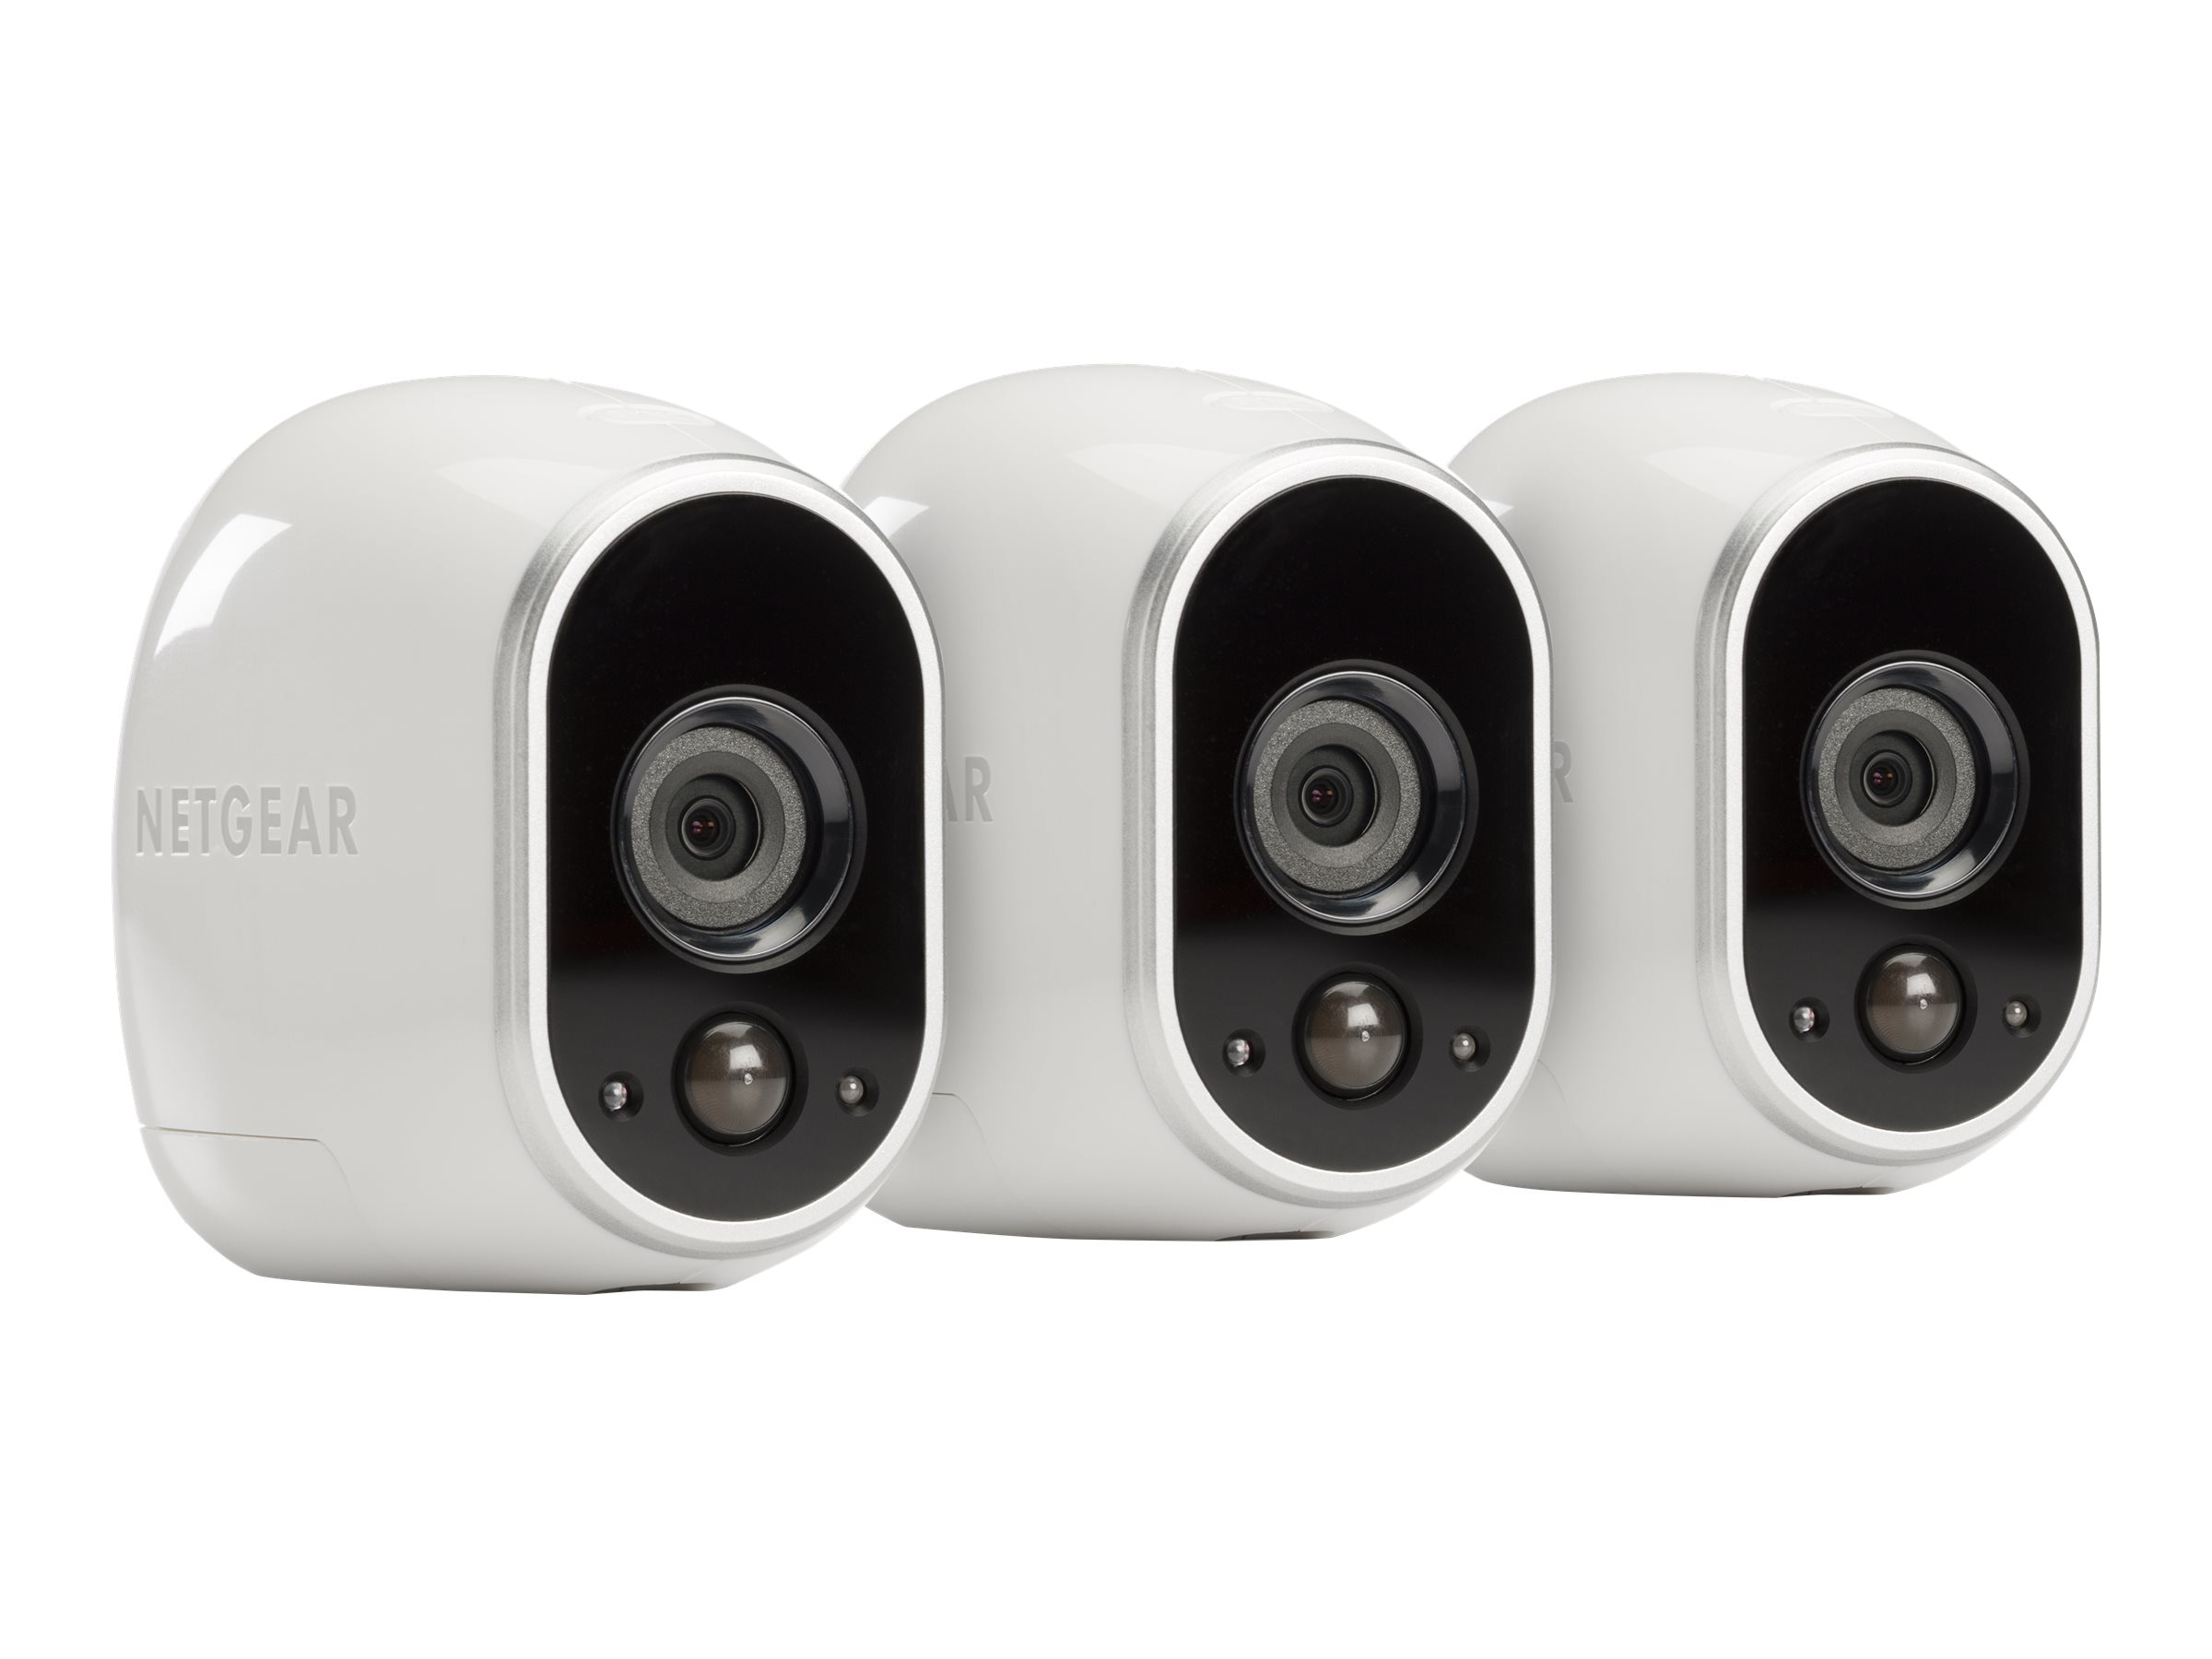 Netgear Arlo Security System with 3 HD Cameras, VMS3330-100NAS, 18791437, Cameras - Security